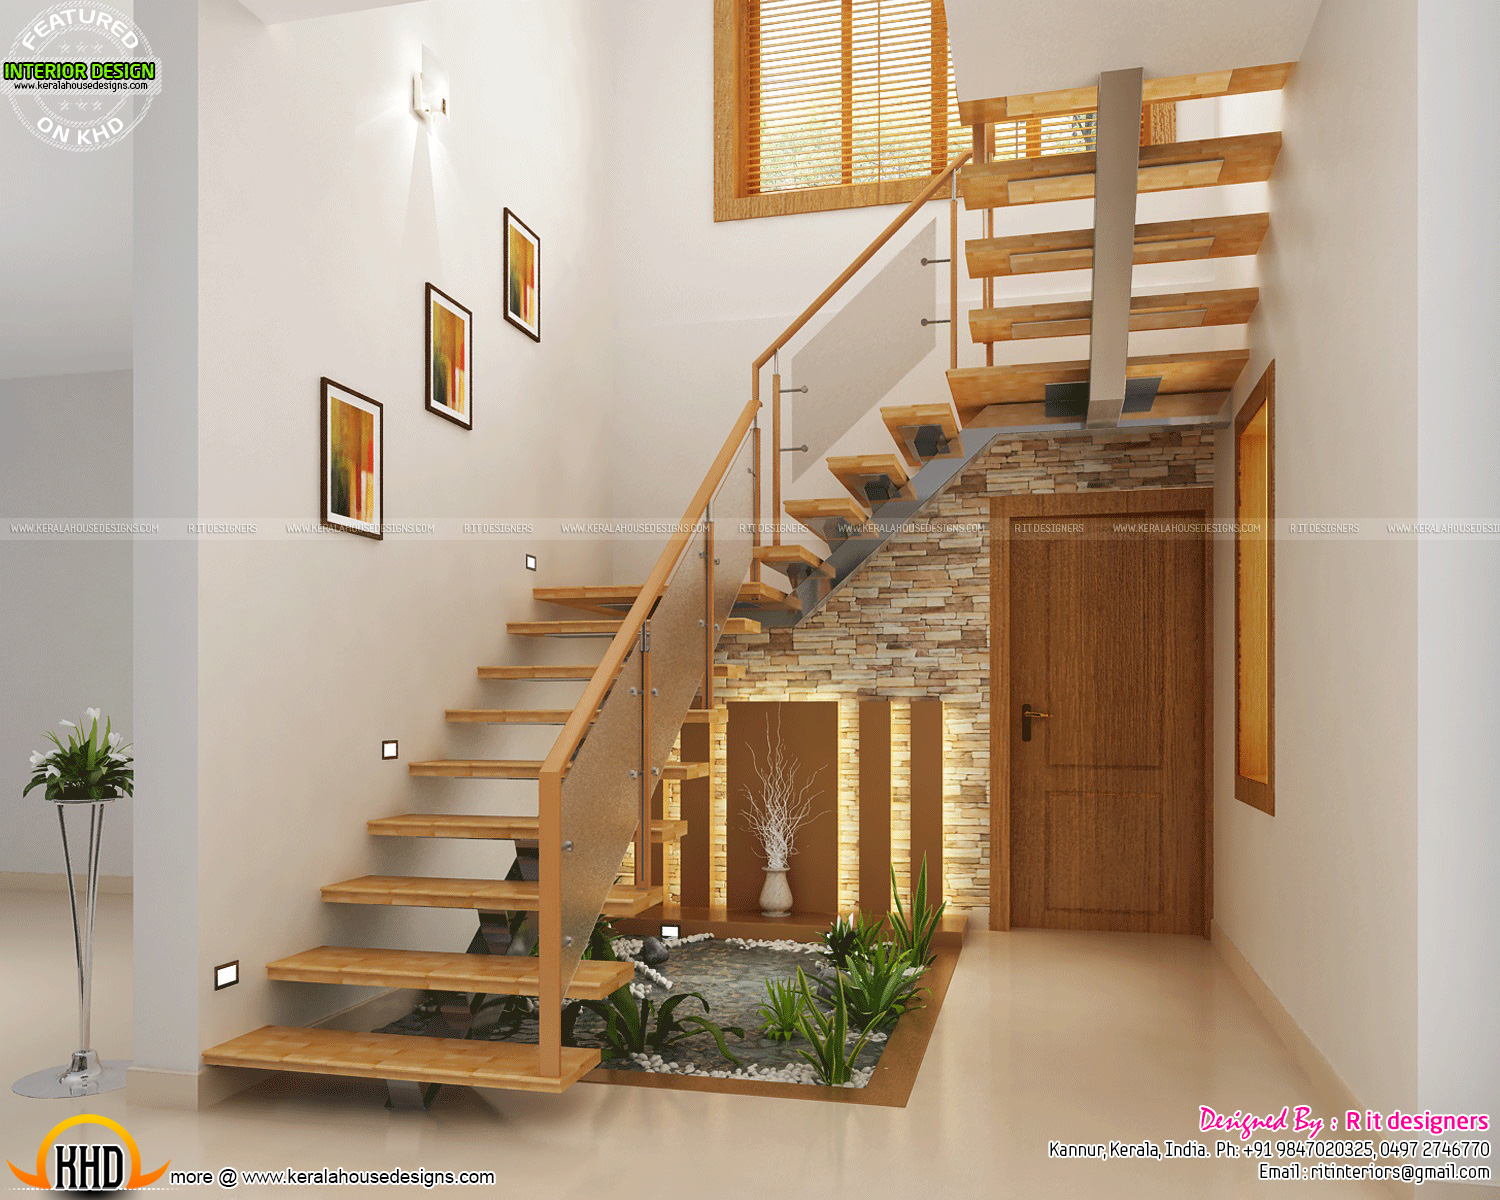 July 2015 kerala home design and floor plans House design inside